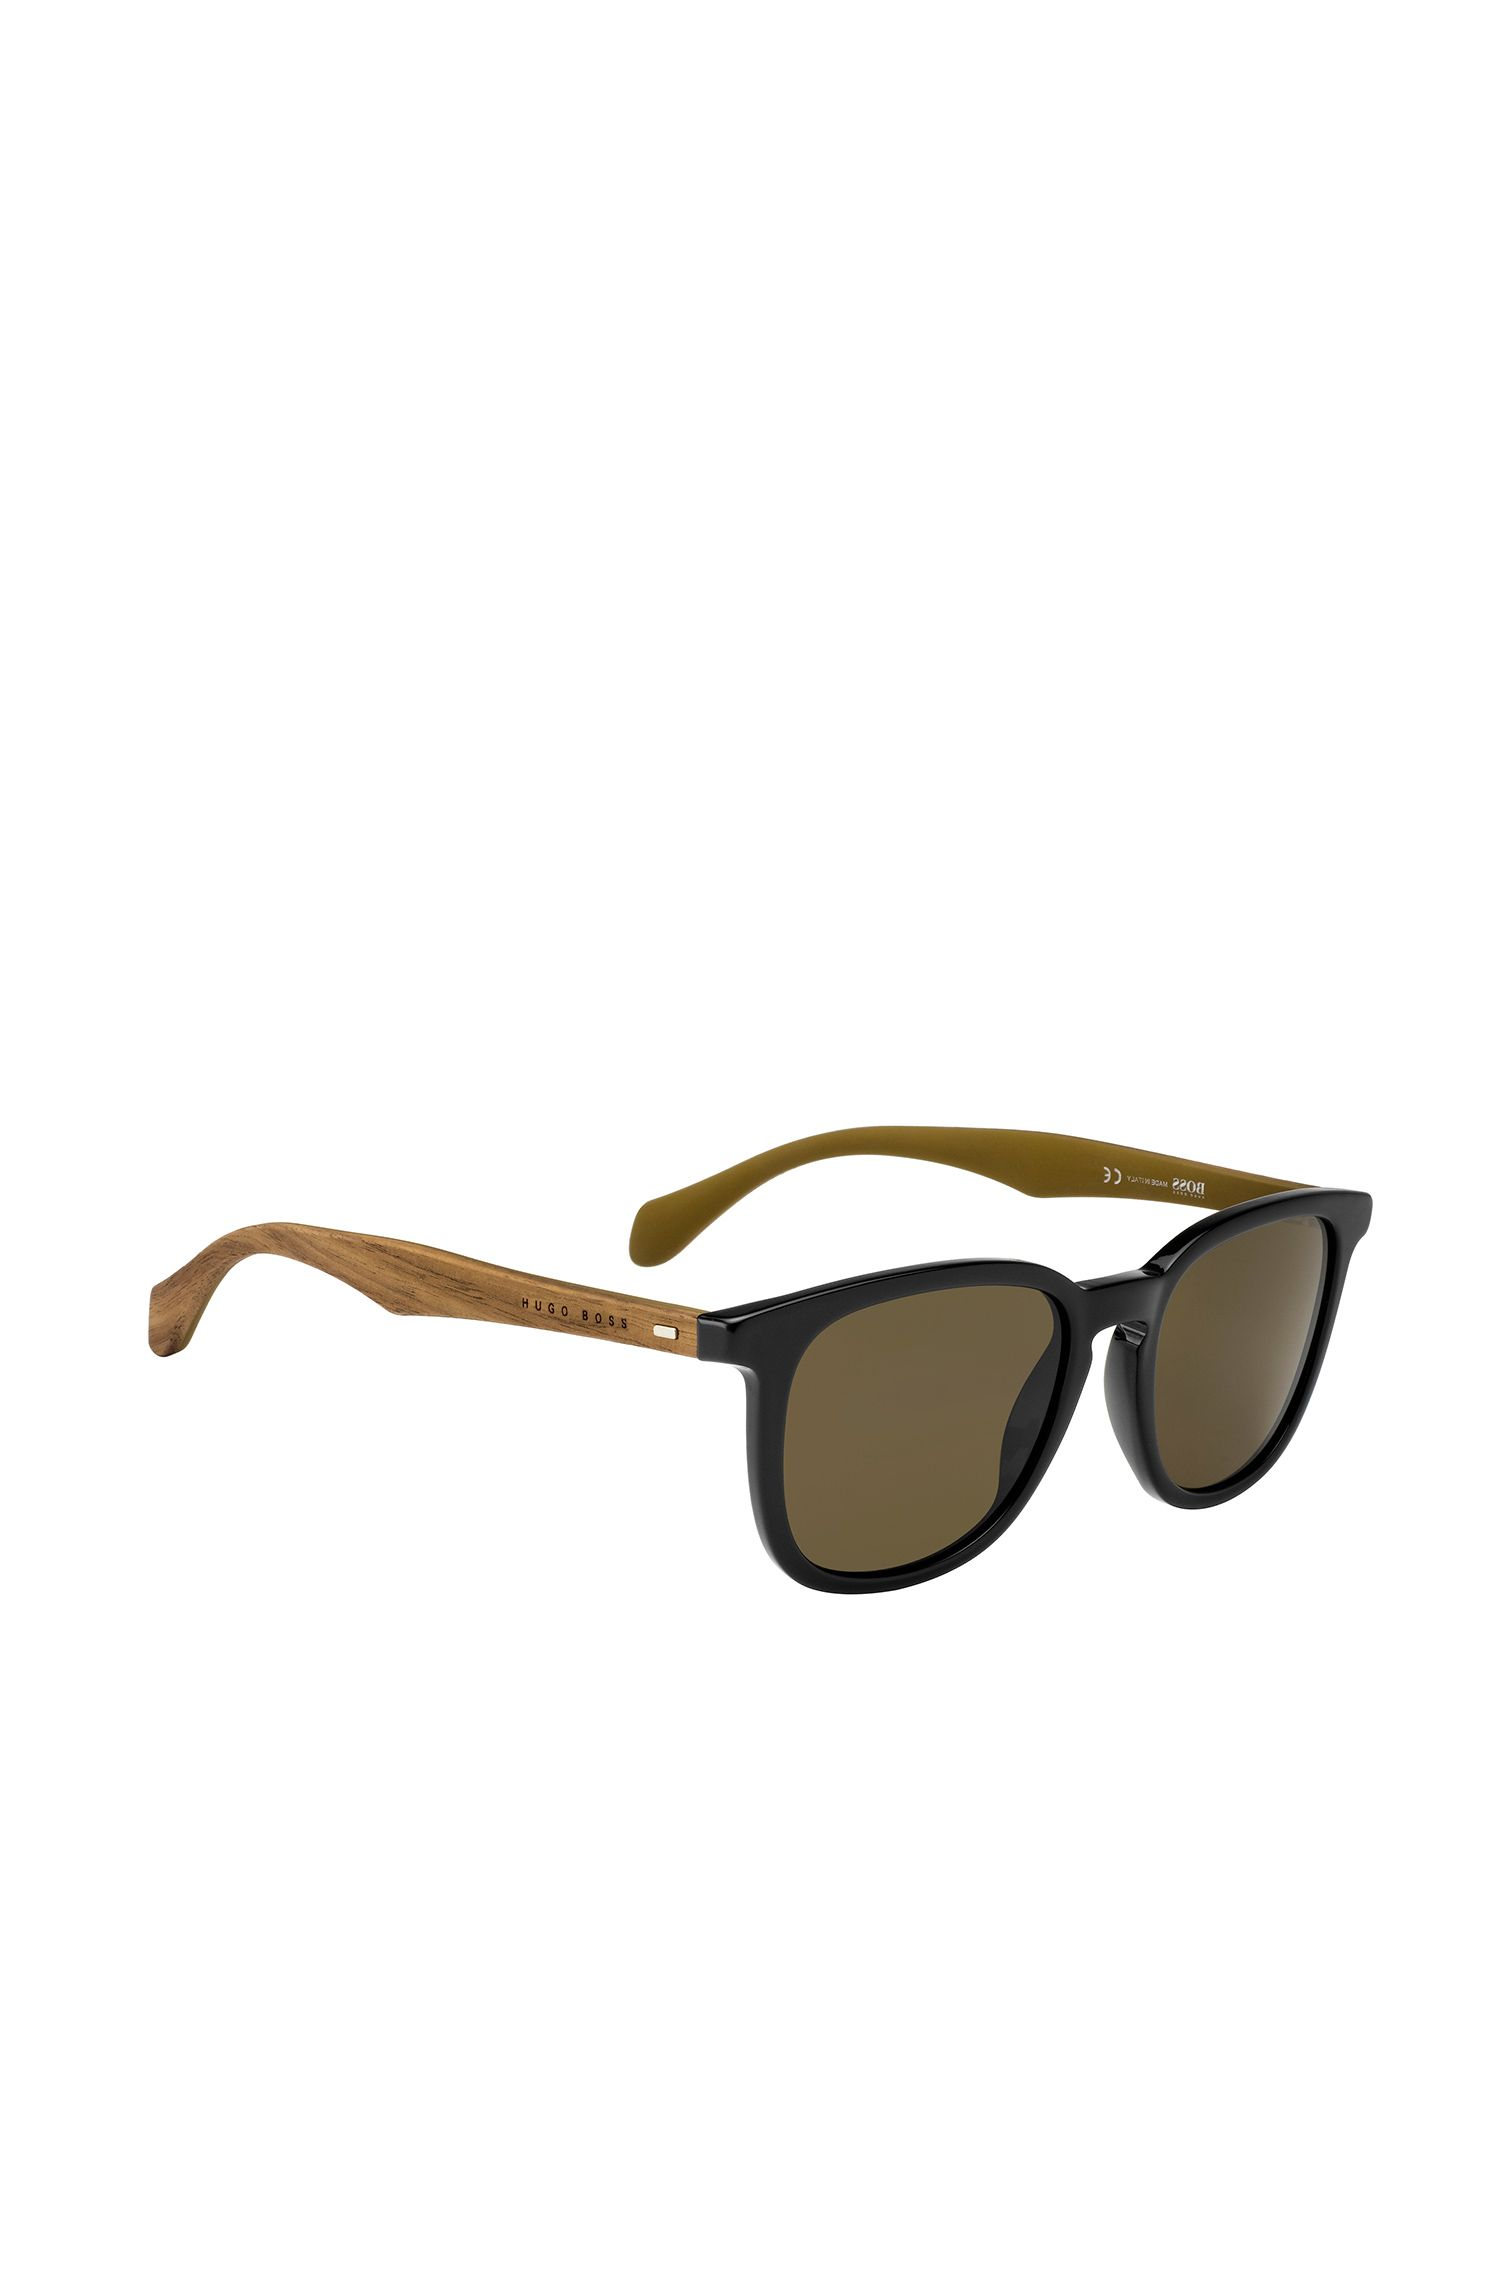 'BOSS 0843S' | Wood Acetate Round Sunglasses